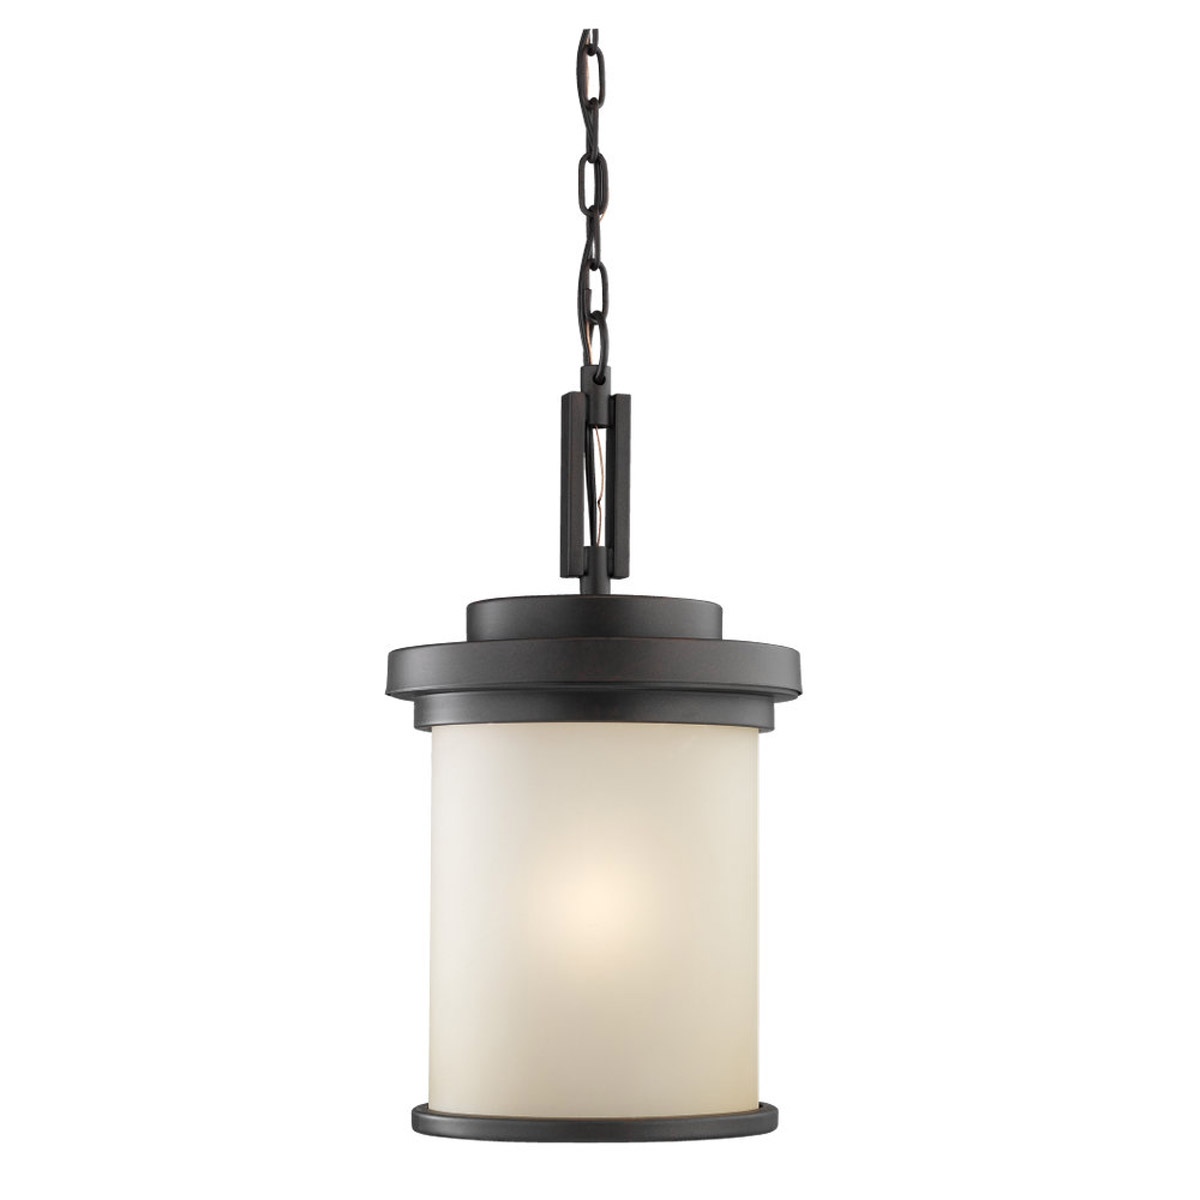 Sea Gull Lighting Winnetka 1 Light Outdoor Pendant in Misted Bronze 60660-814